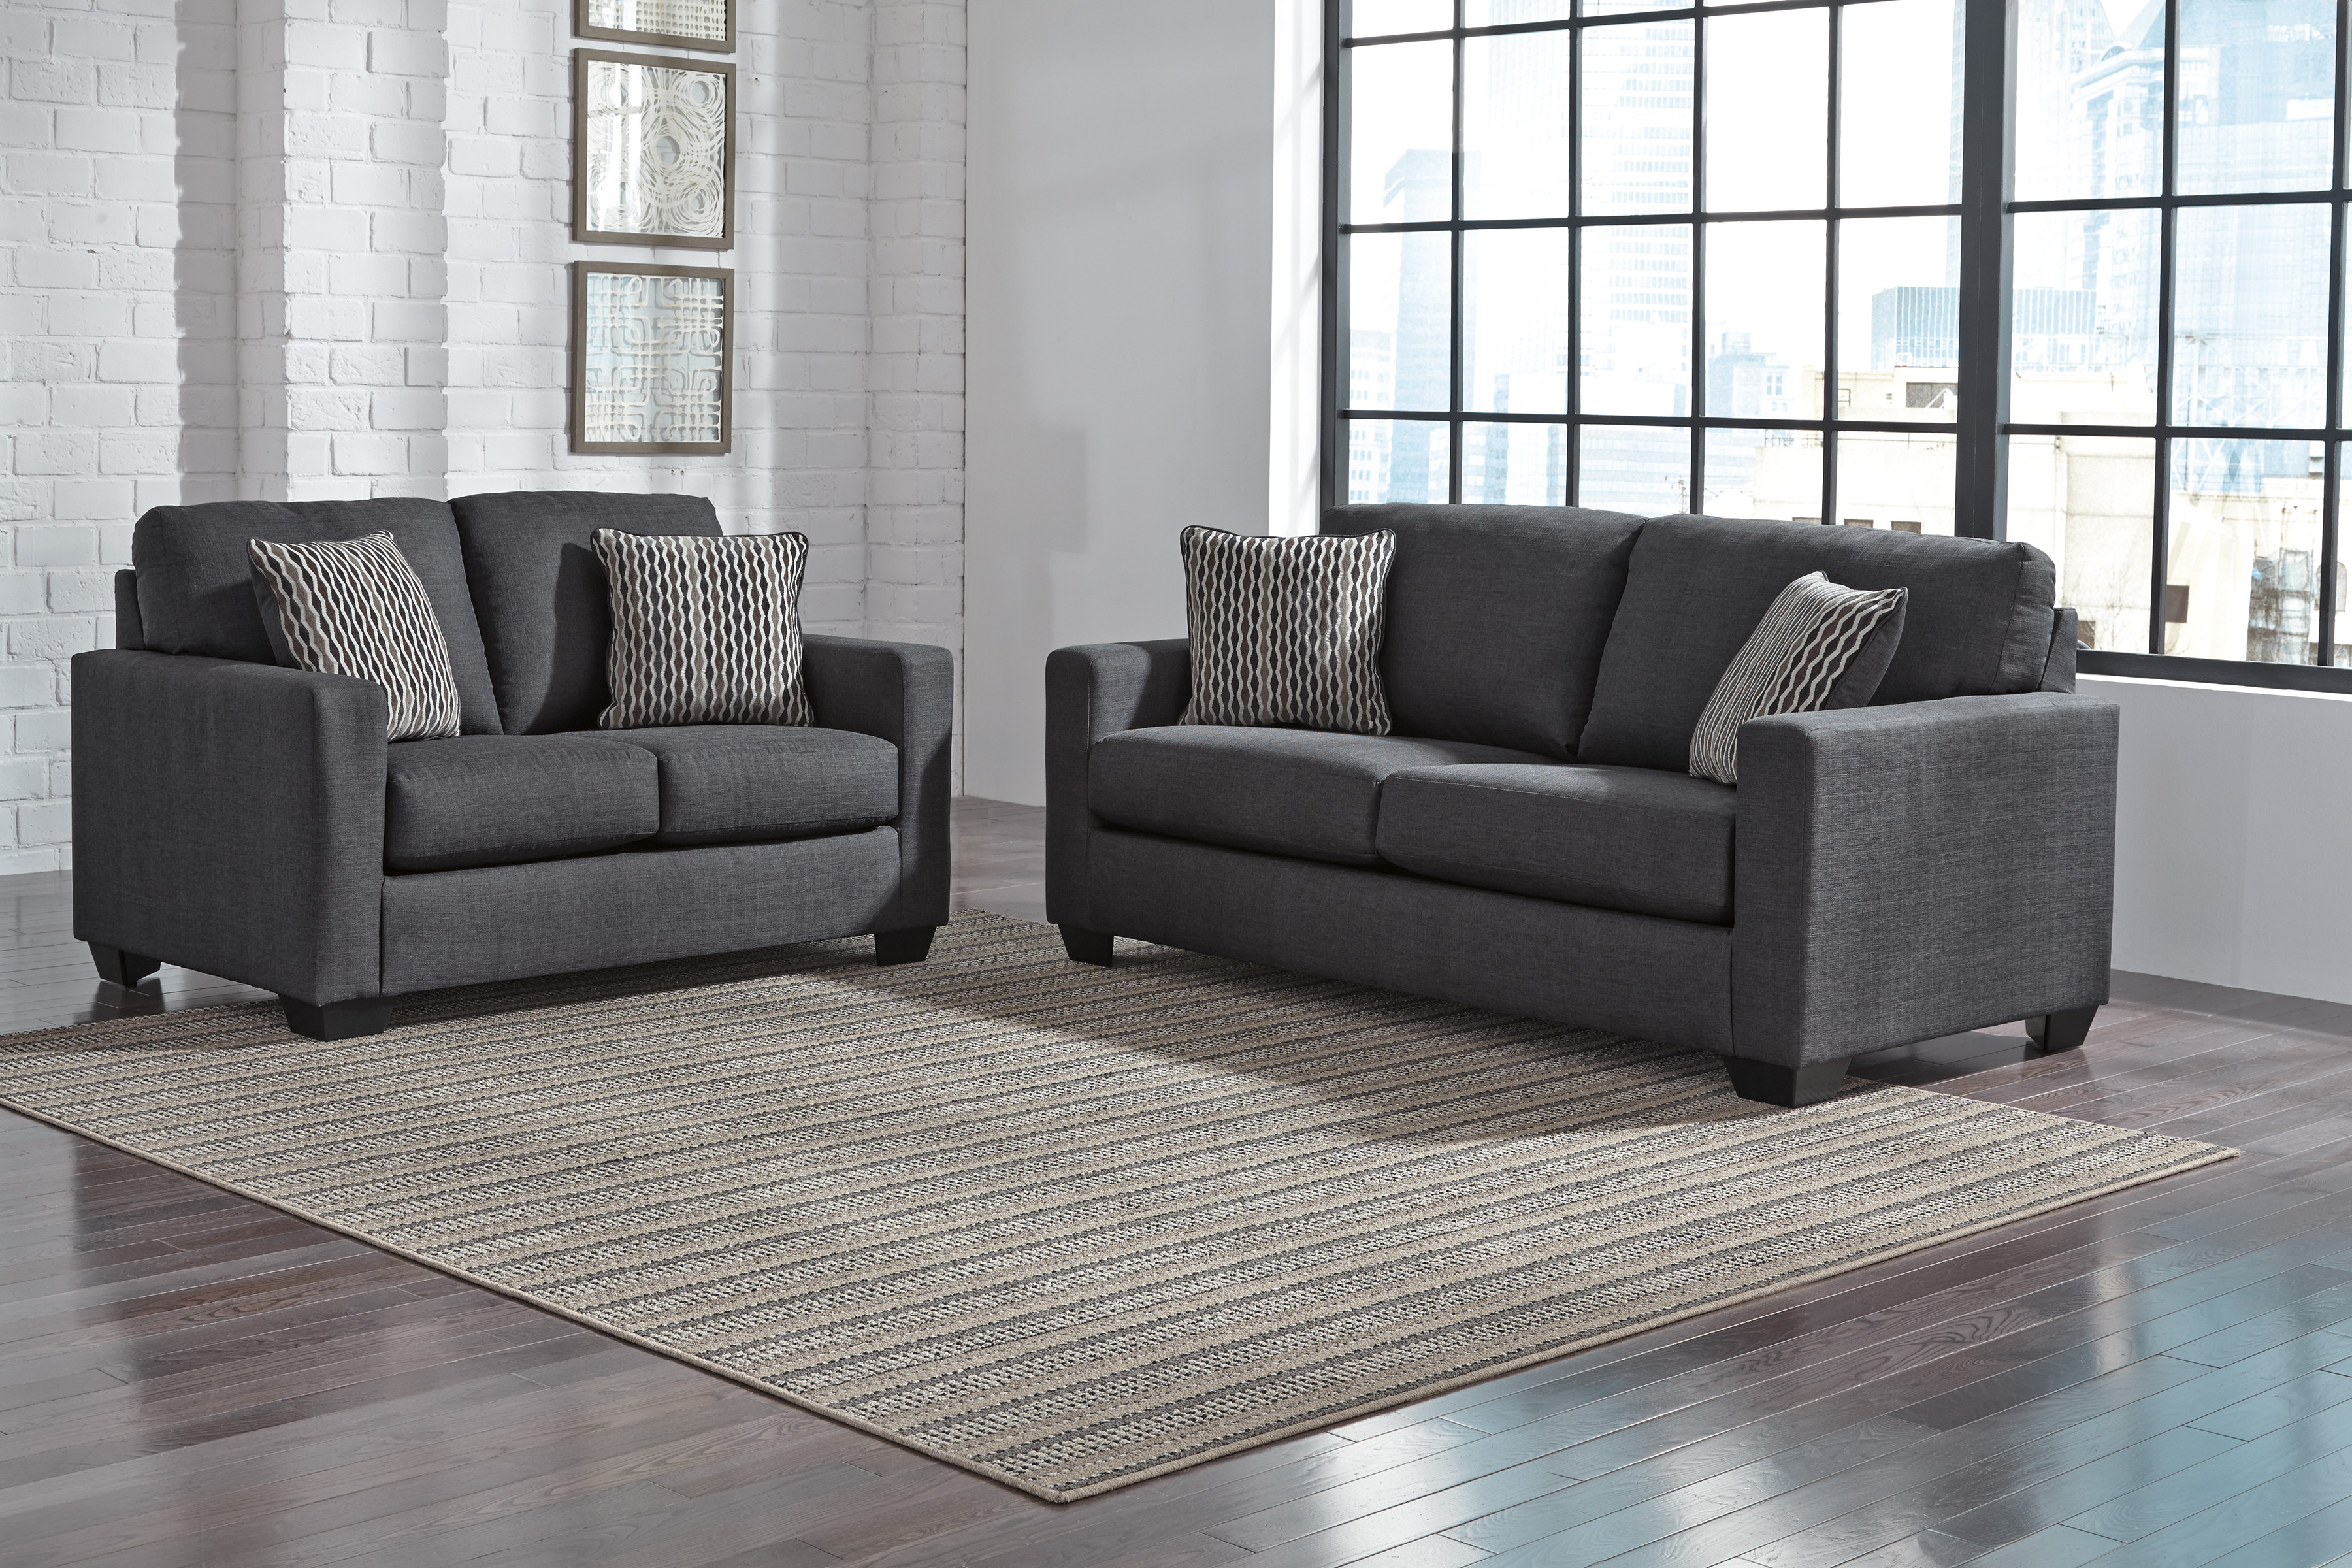 ashley bavello 2pc sofa amp loveseat set dallas tx living